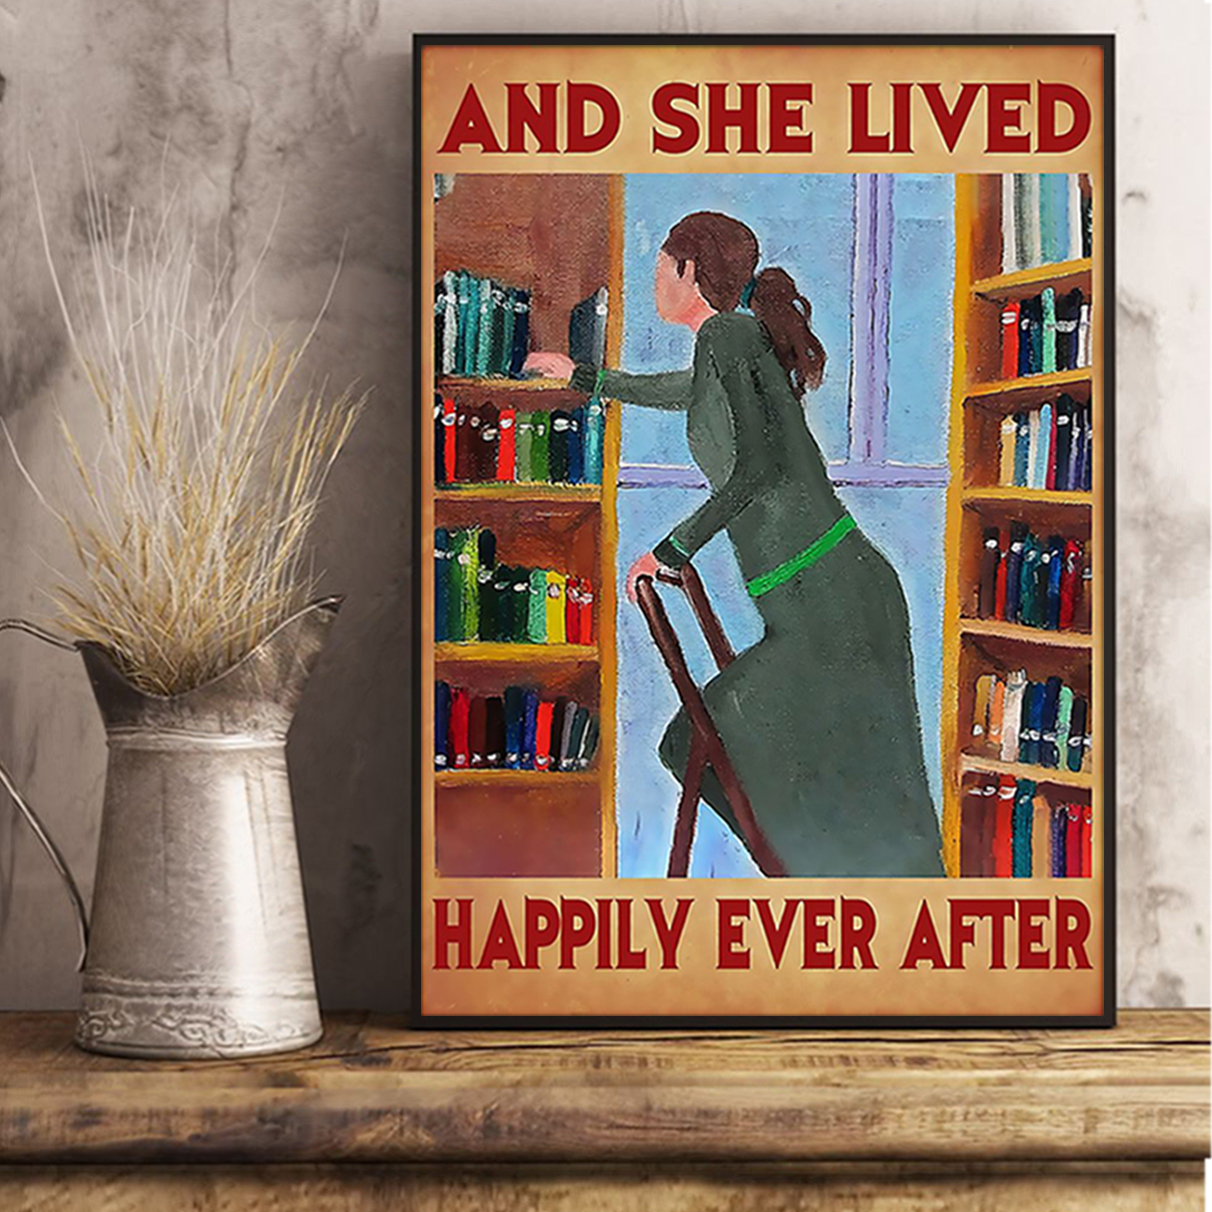 Librarian and she lived happily ever after poster A3